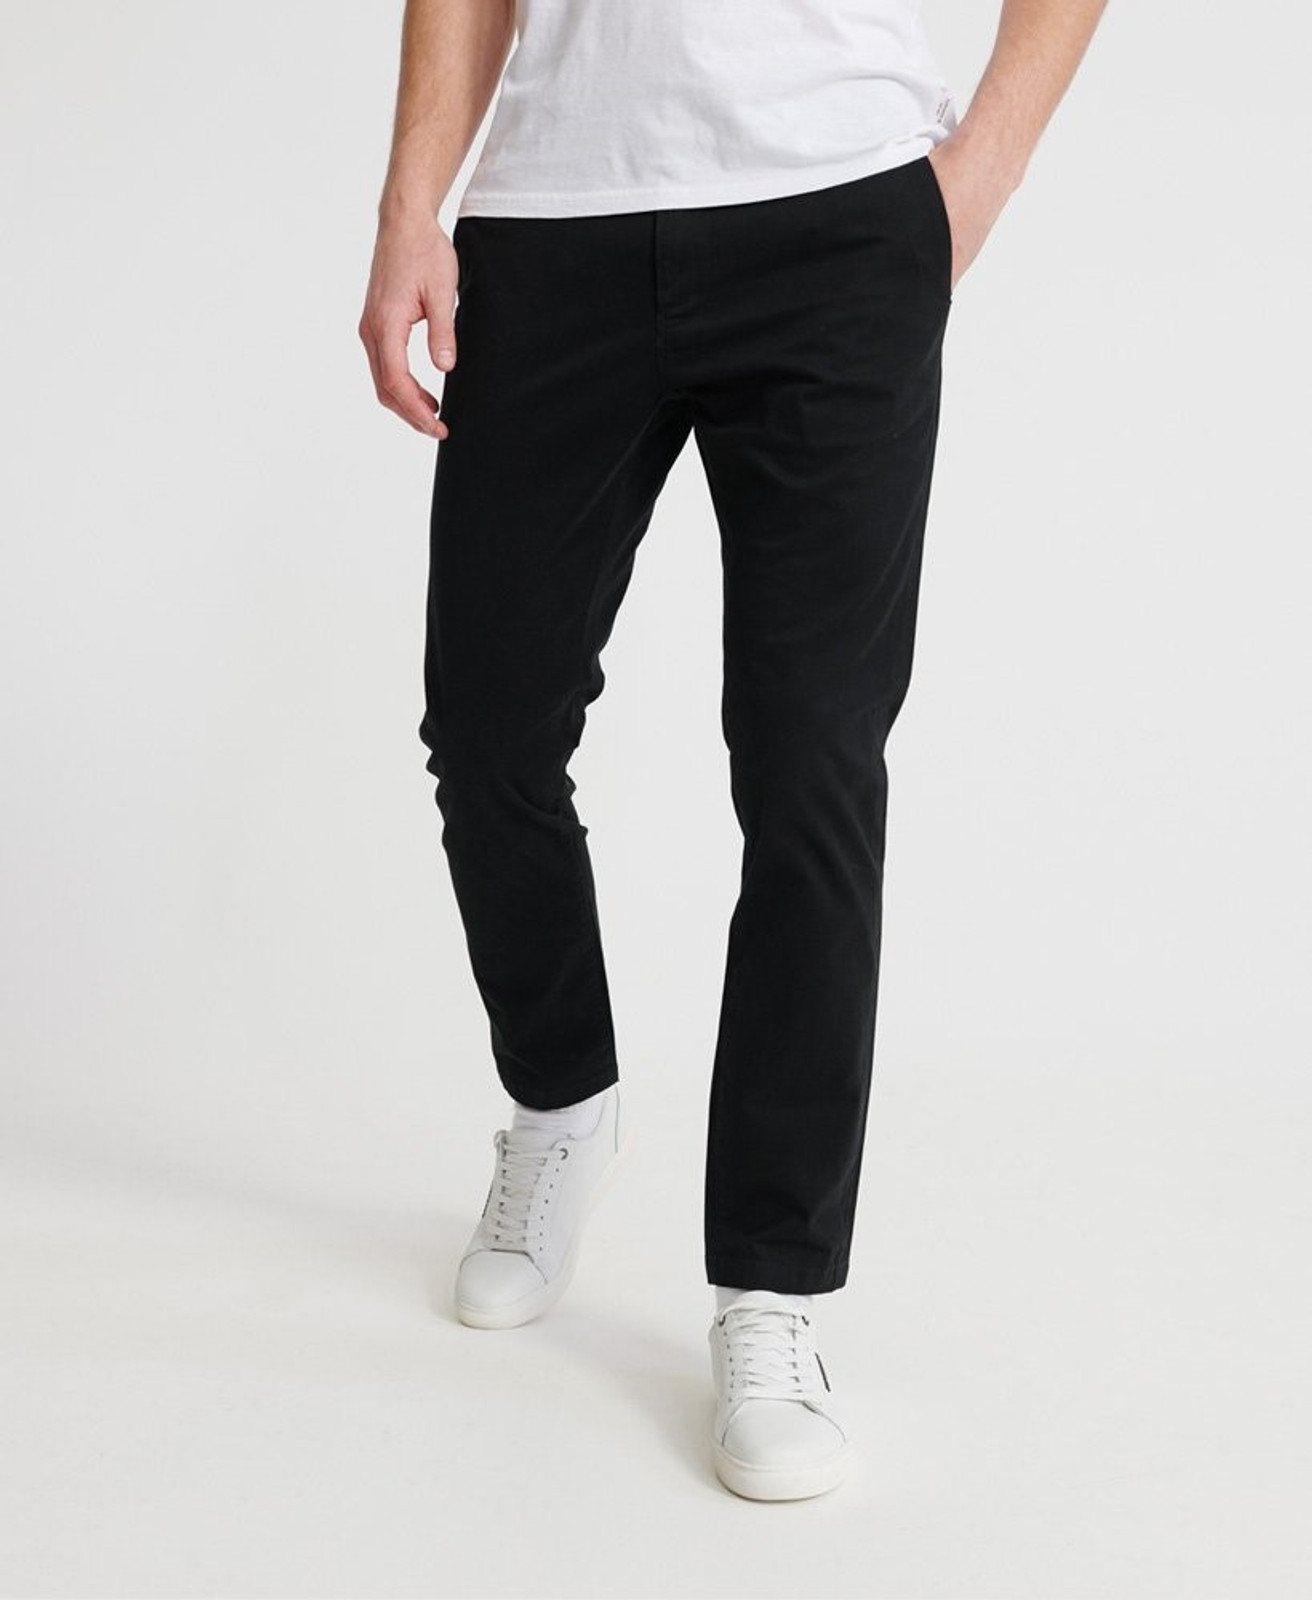 Superdry Mens EDIT CHINO Black Chino Pants 0